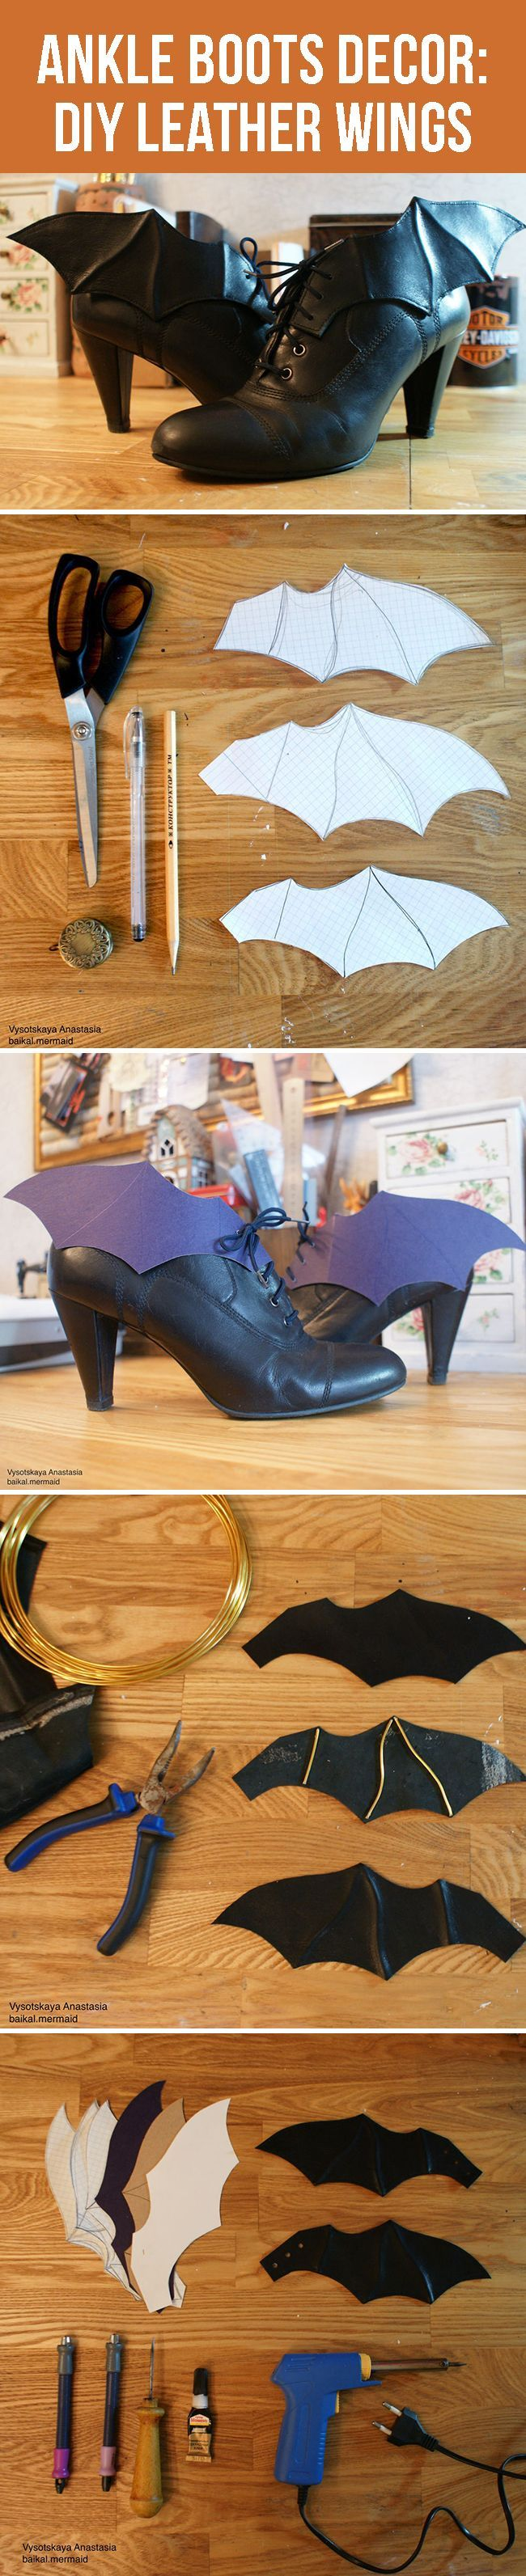 Ankle boots decor: how to make leather wings                                                                                                                                                                                 More